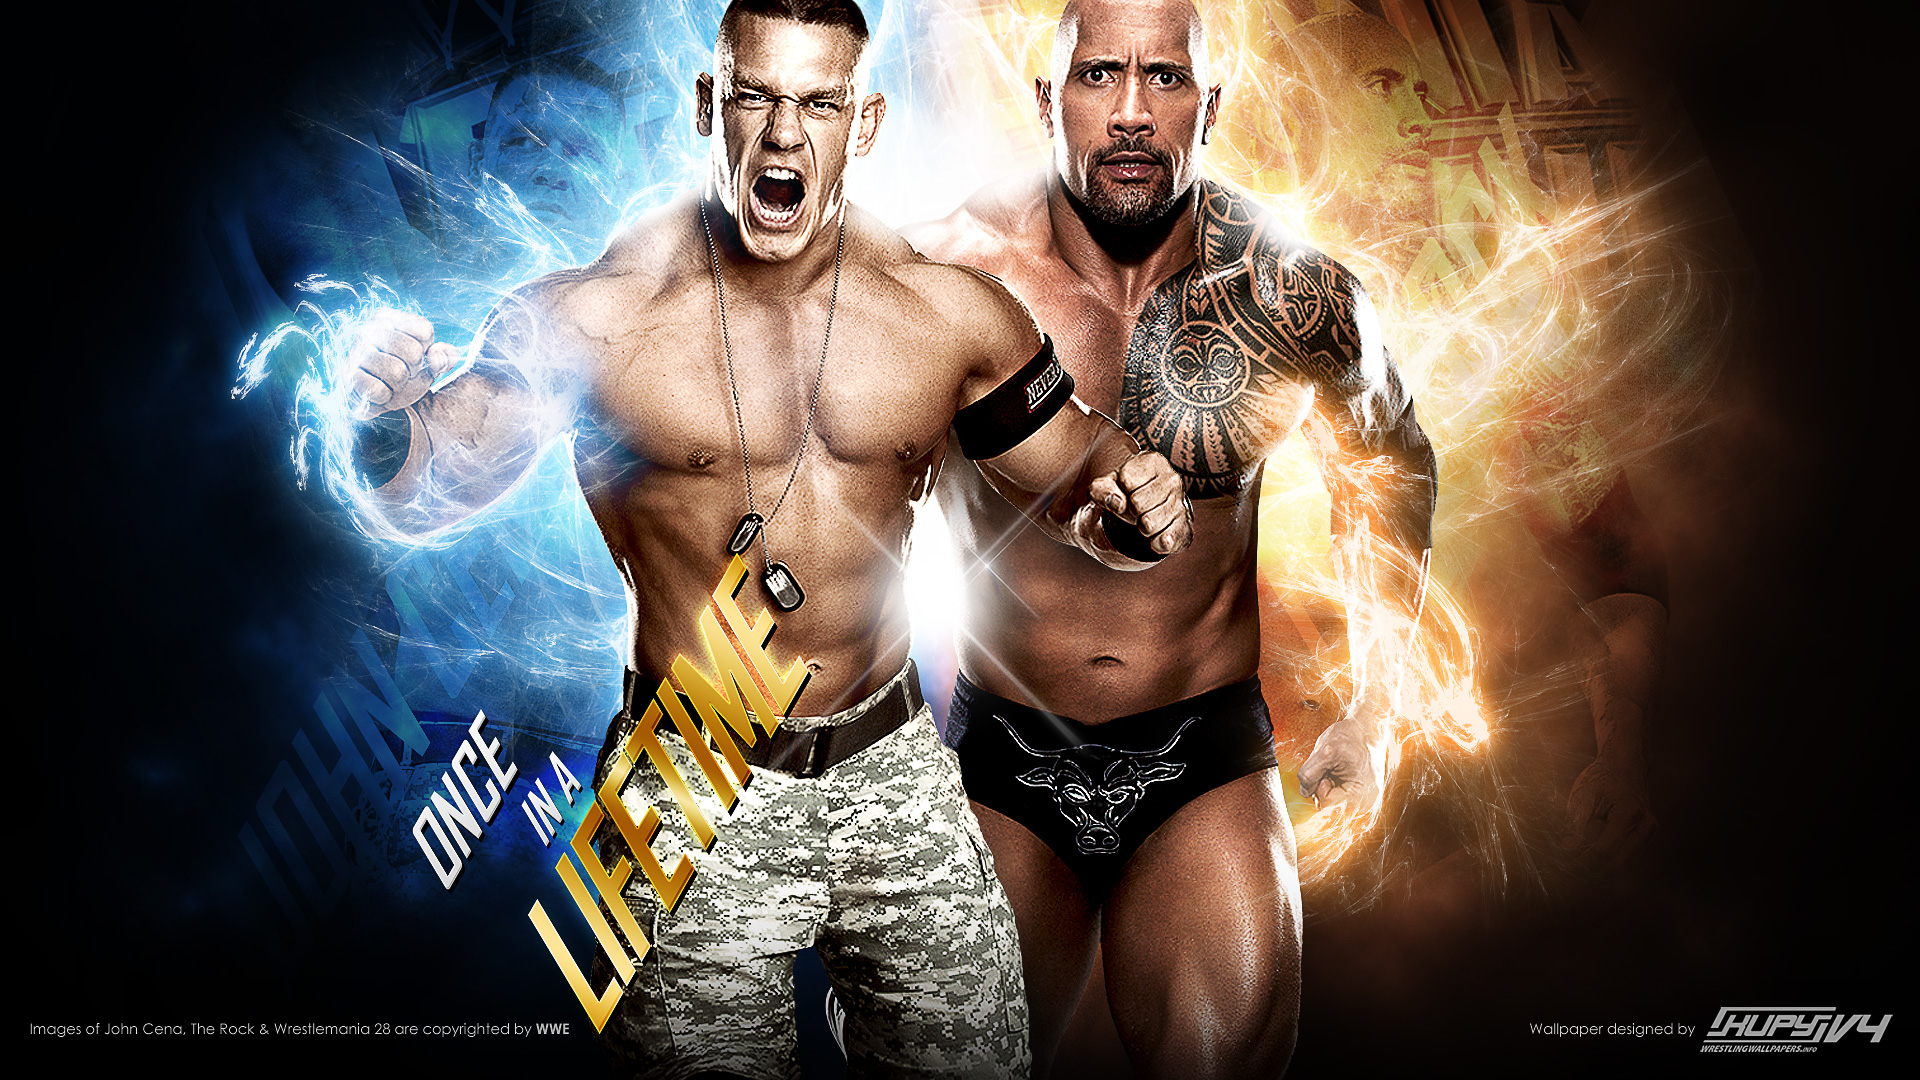 kupy wrestling wallpapers the latest source for your wwe wrestling wallpaper needs mobile hd and 4k resolutions available blog archive new road to wrestlemania 28 john cena vs the rock john cena vs the rock